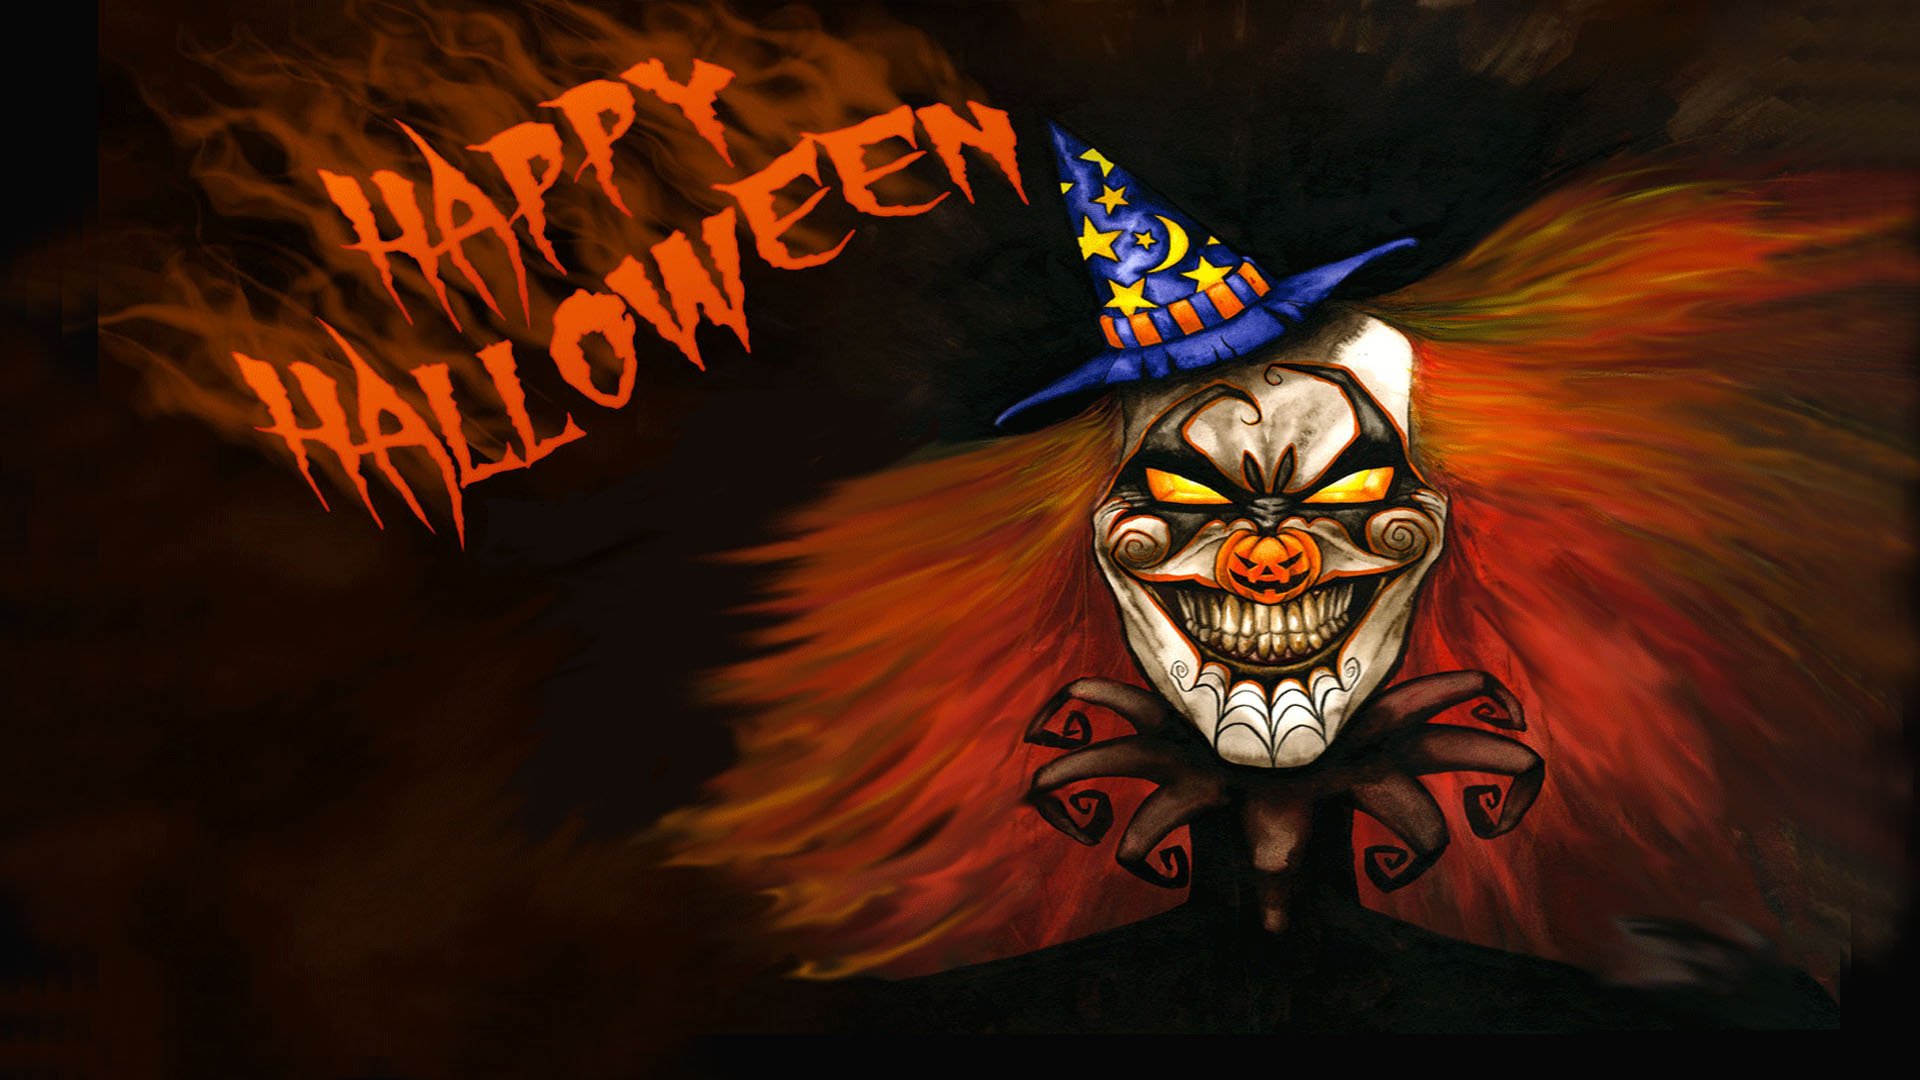 Beautiful Wallpaper High Resolution Halloween - Happy-Halloween-Wallpaper-High-Resolution-2015  Snapshot_5206.jpg